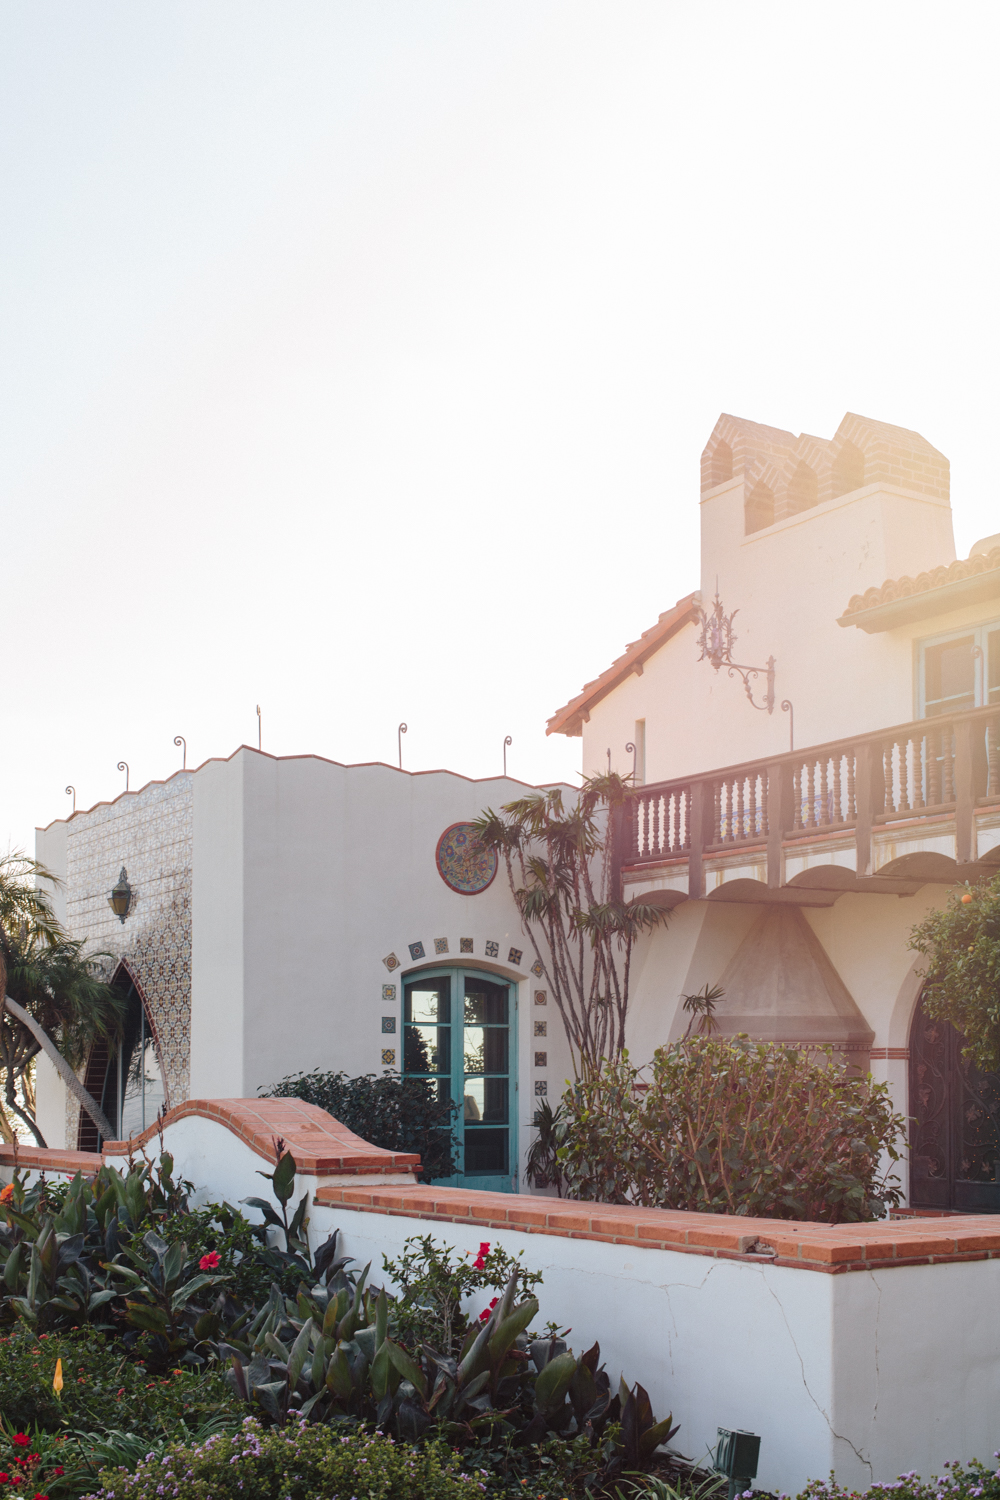 The Spanish Colonial Revival style was embraced by Californians after WWI.